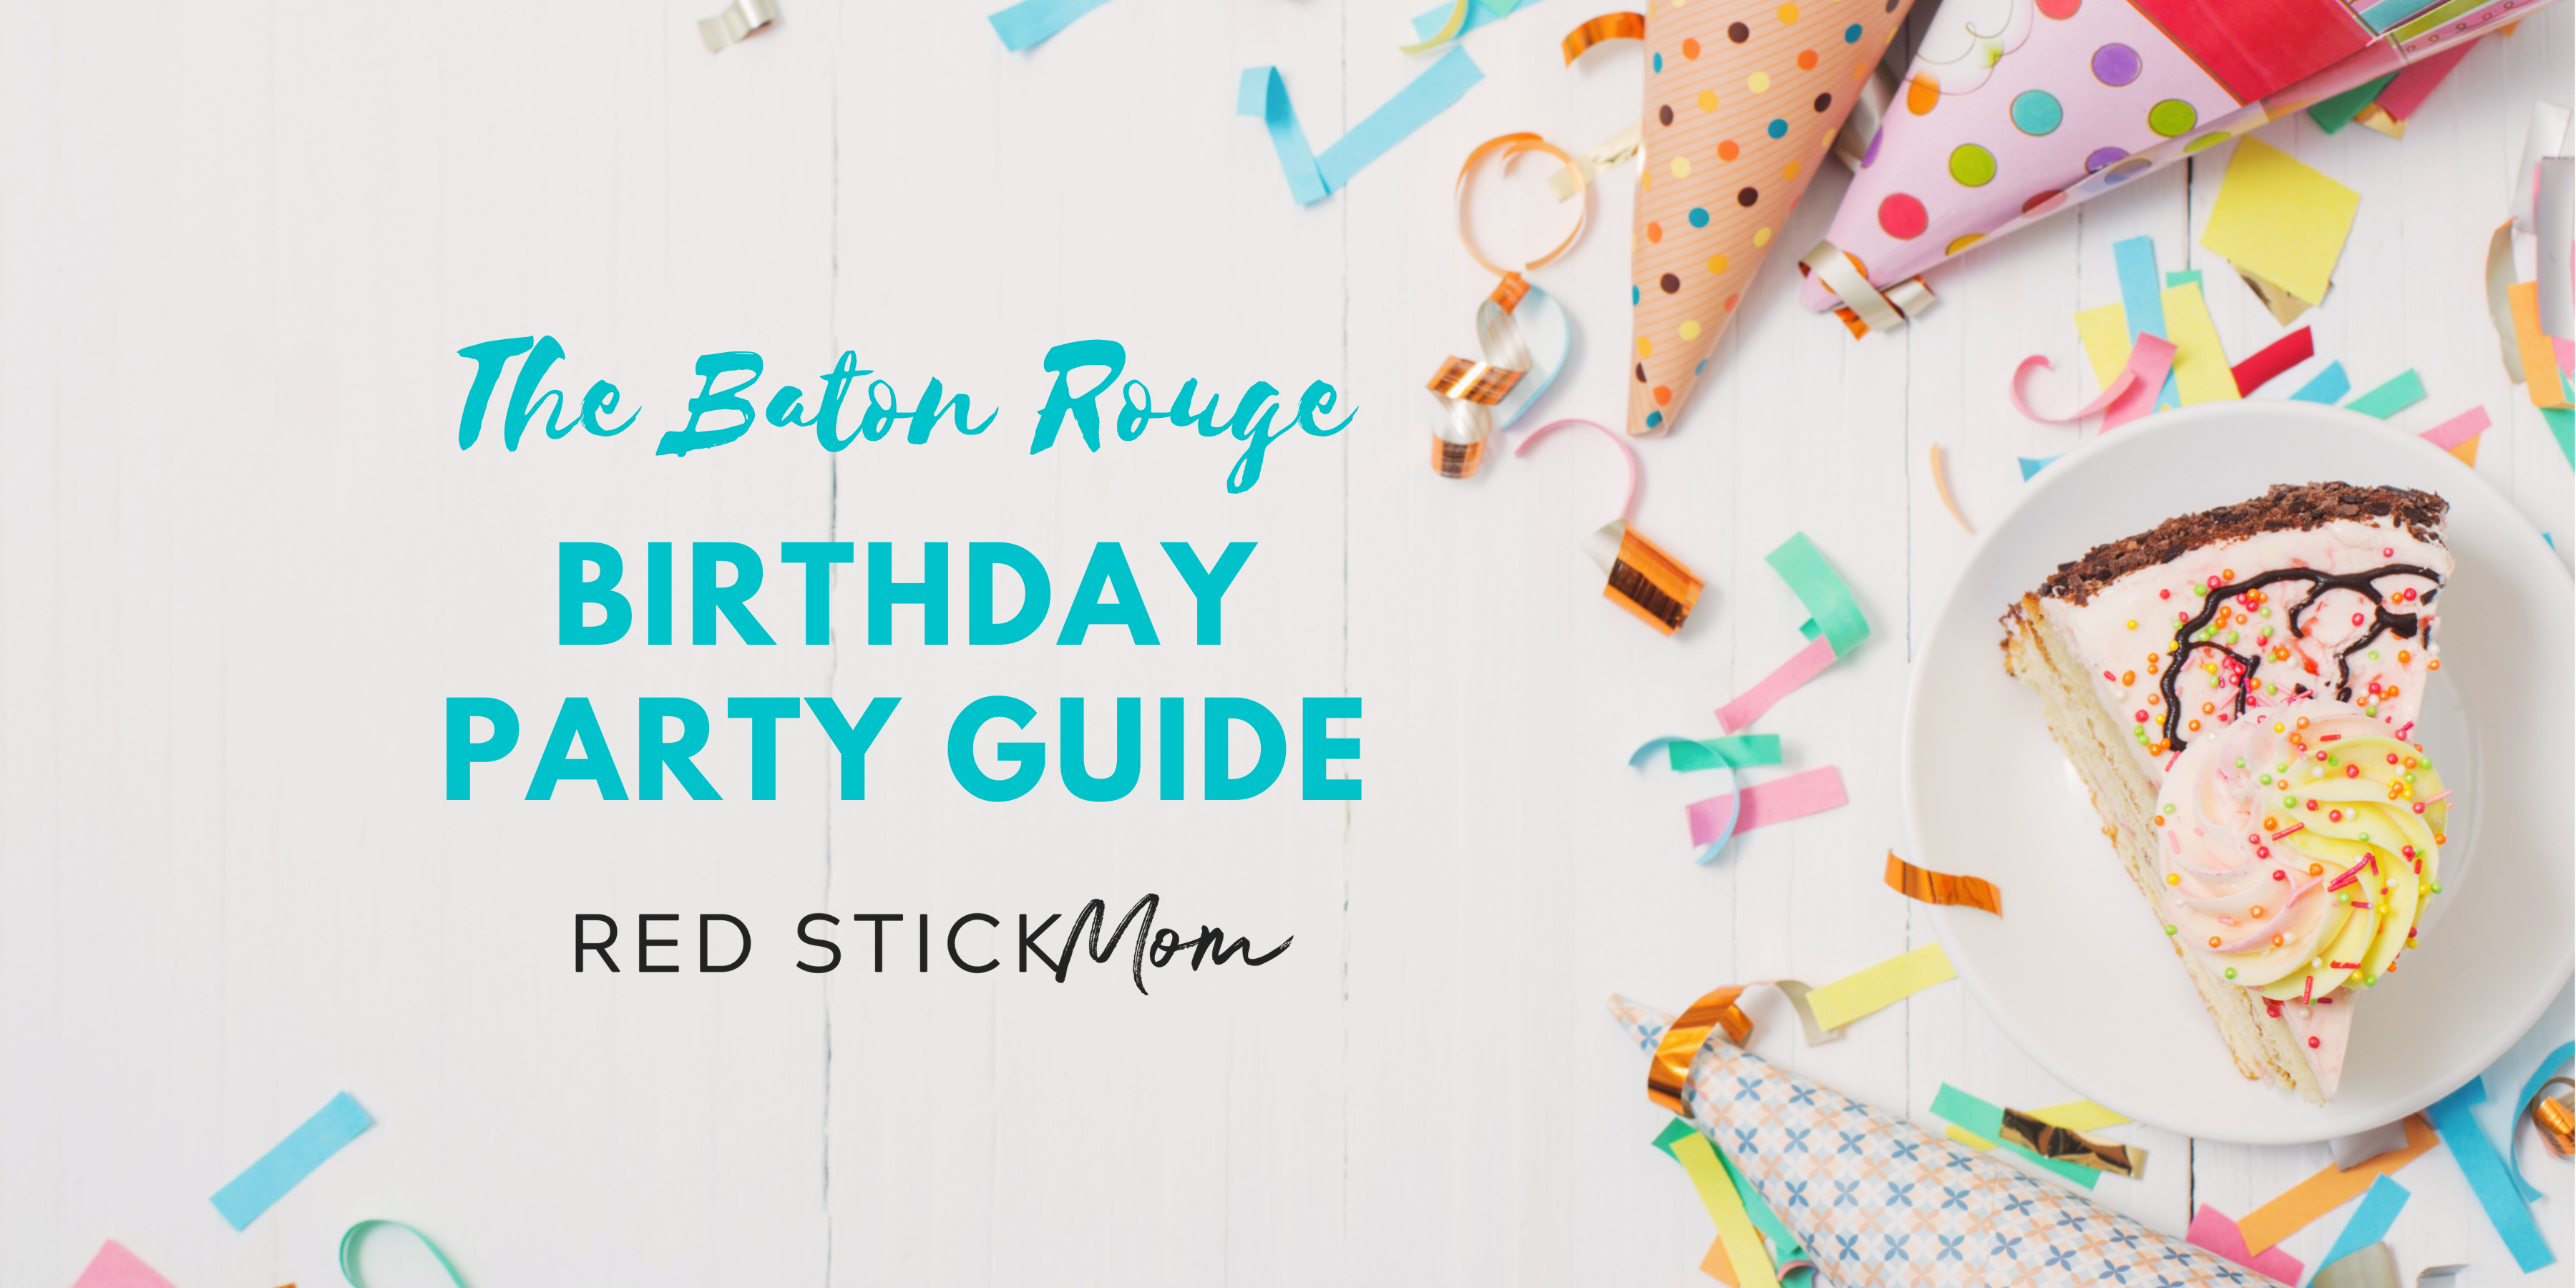 Where to host a birthday party in Baton Rouge?